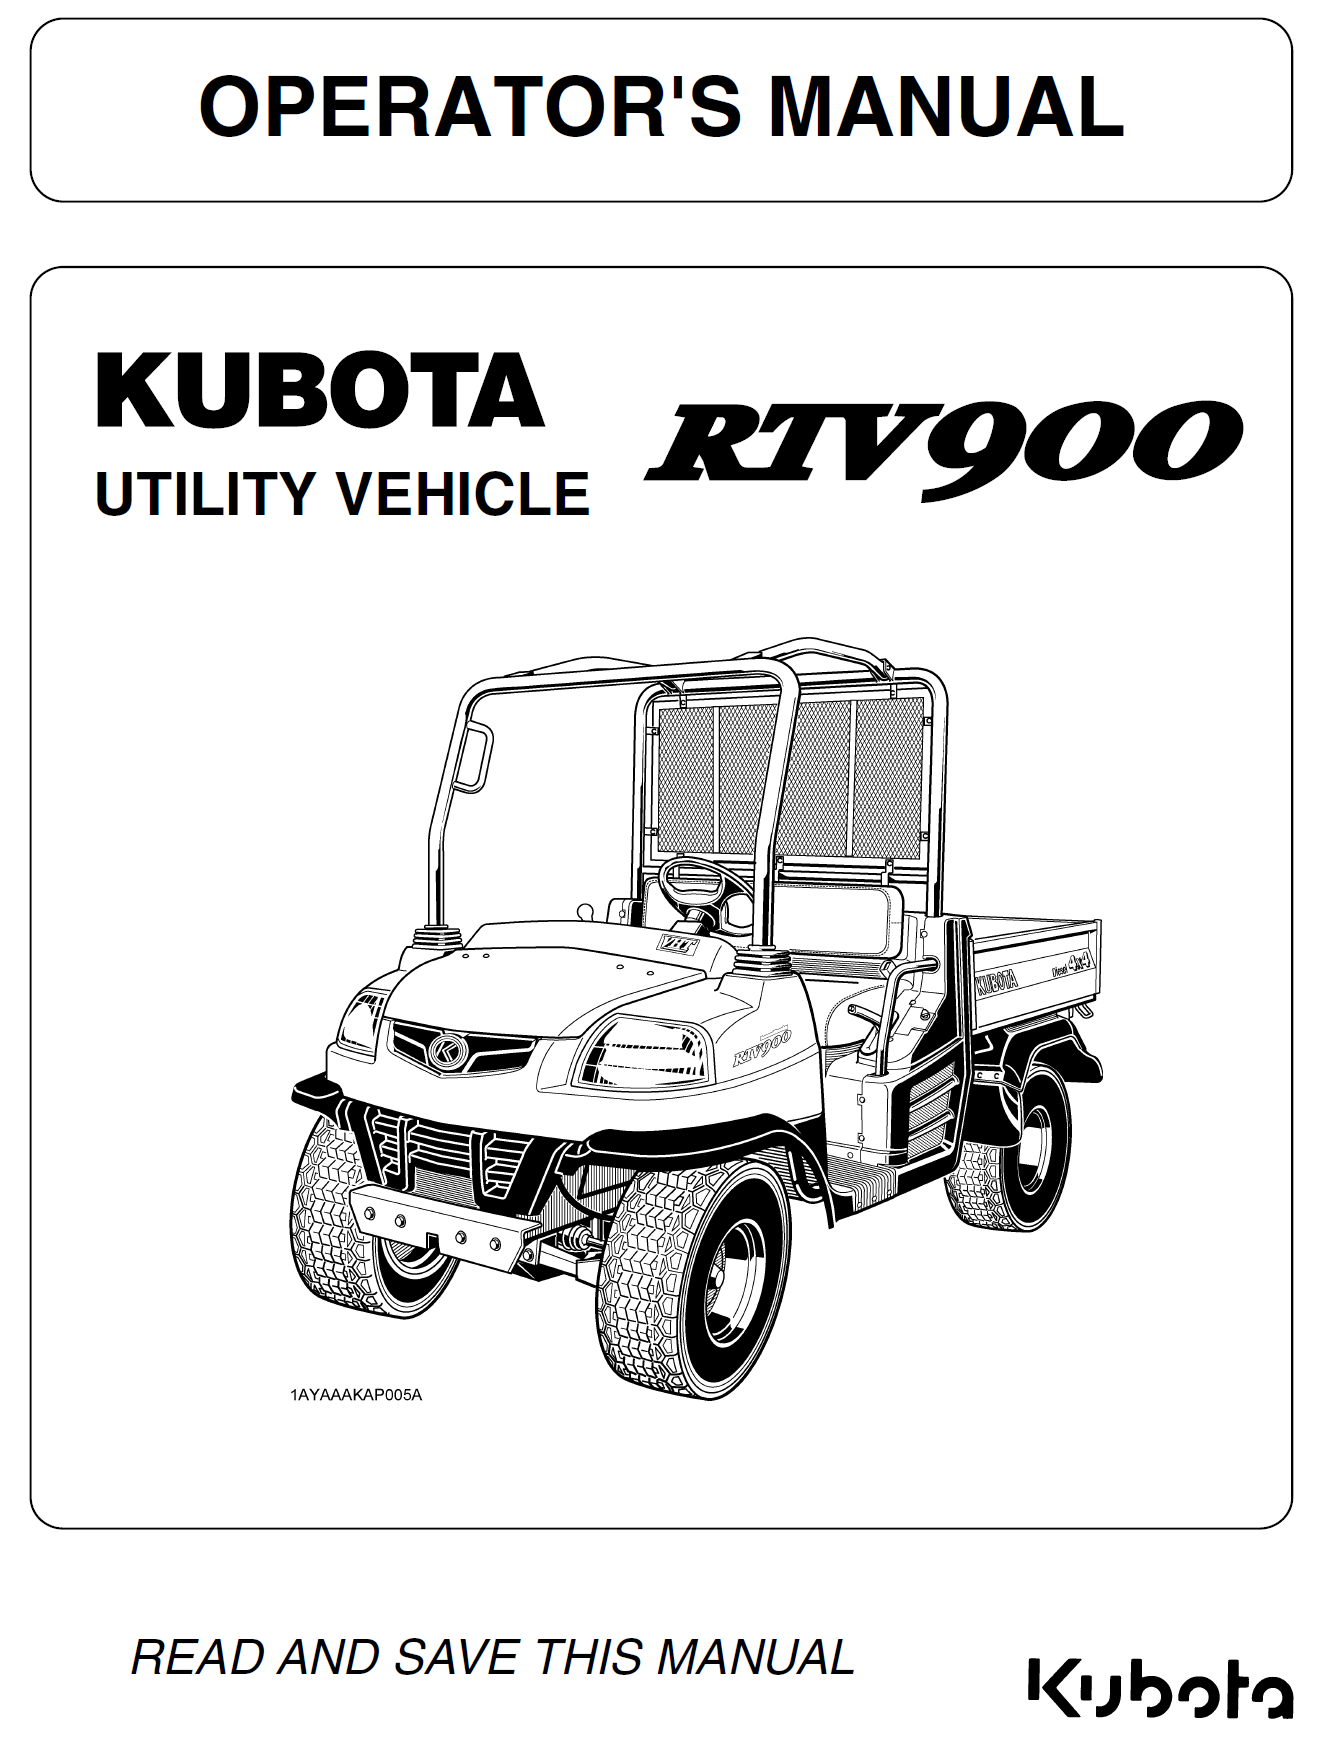 hight resolution of kubota rtv900 operators manual garton tractor californiakubota rtv900 operators manual garton tractor california kubota u0026